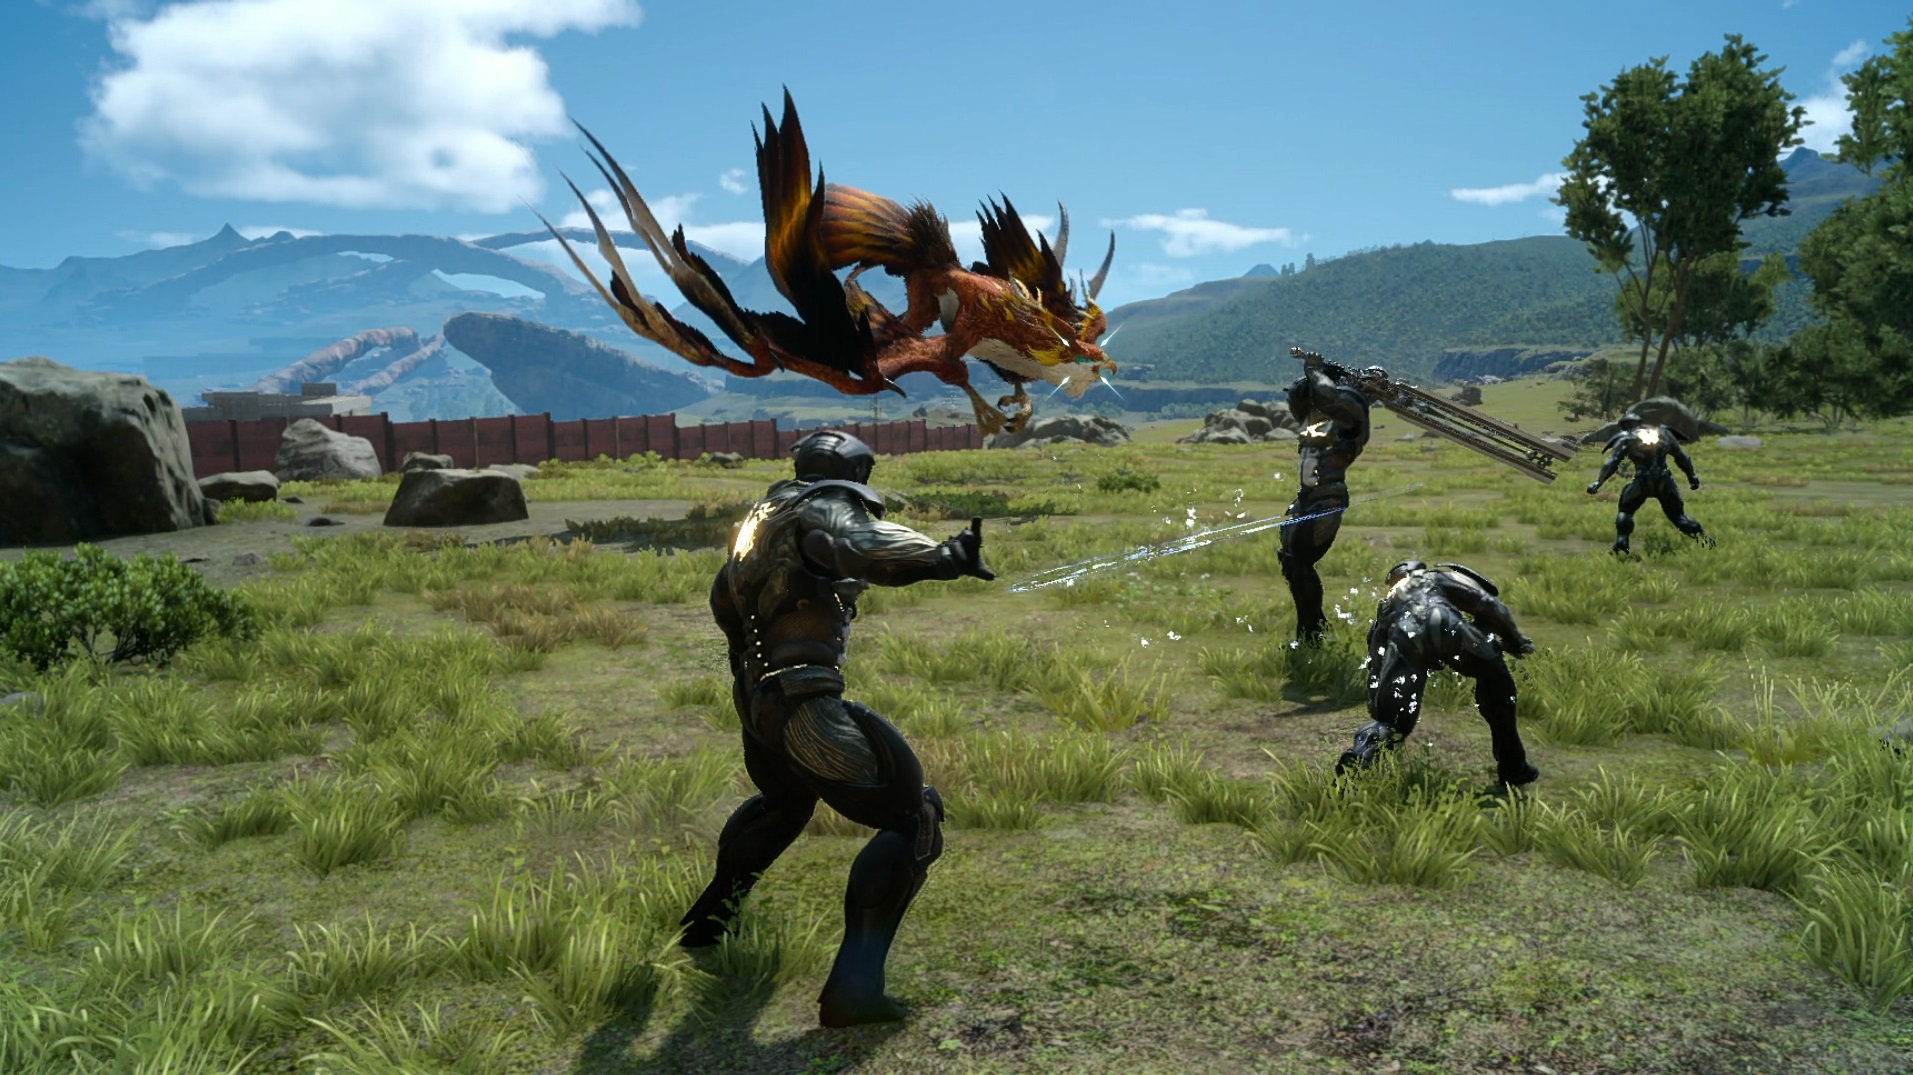 Final Fantasy Xv Getting Another Multiplayer Beta Soon